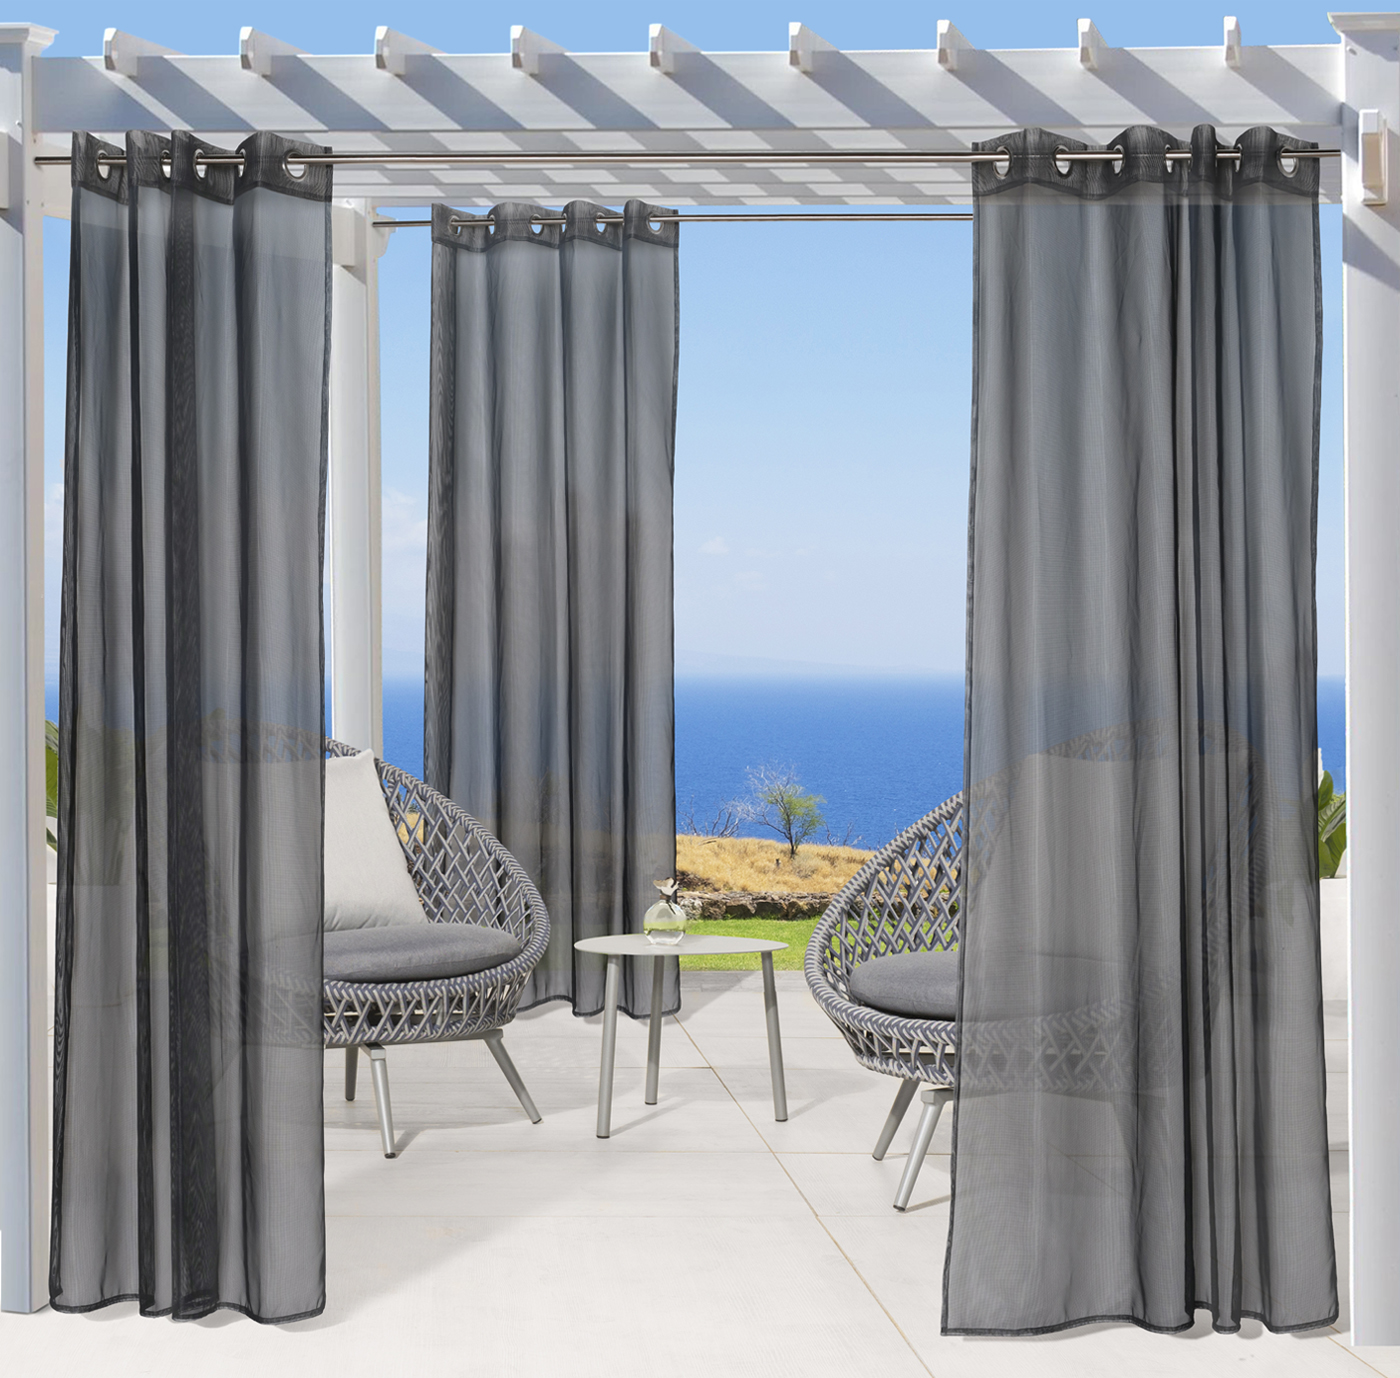 tips different living patio outdoor space freshly curtains create to for picking